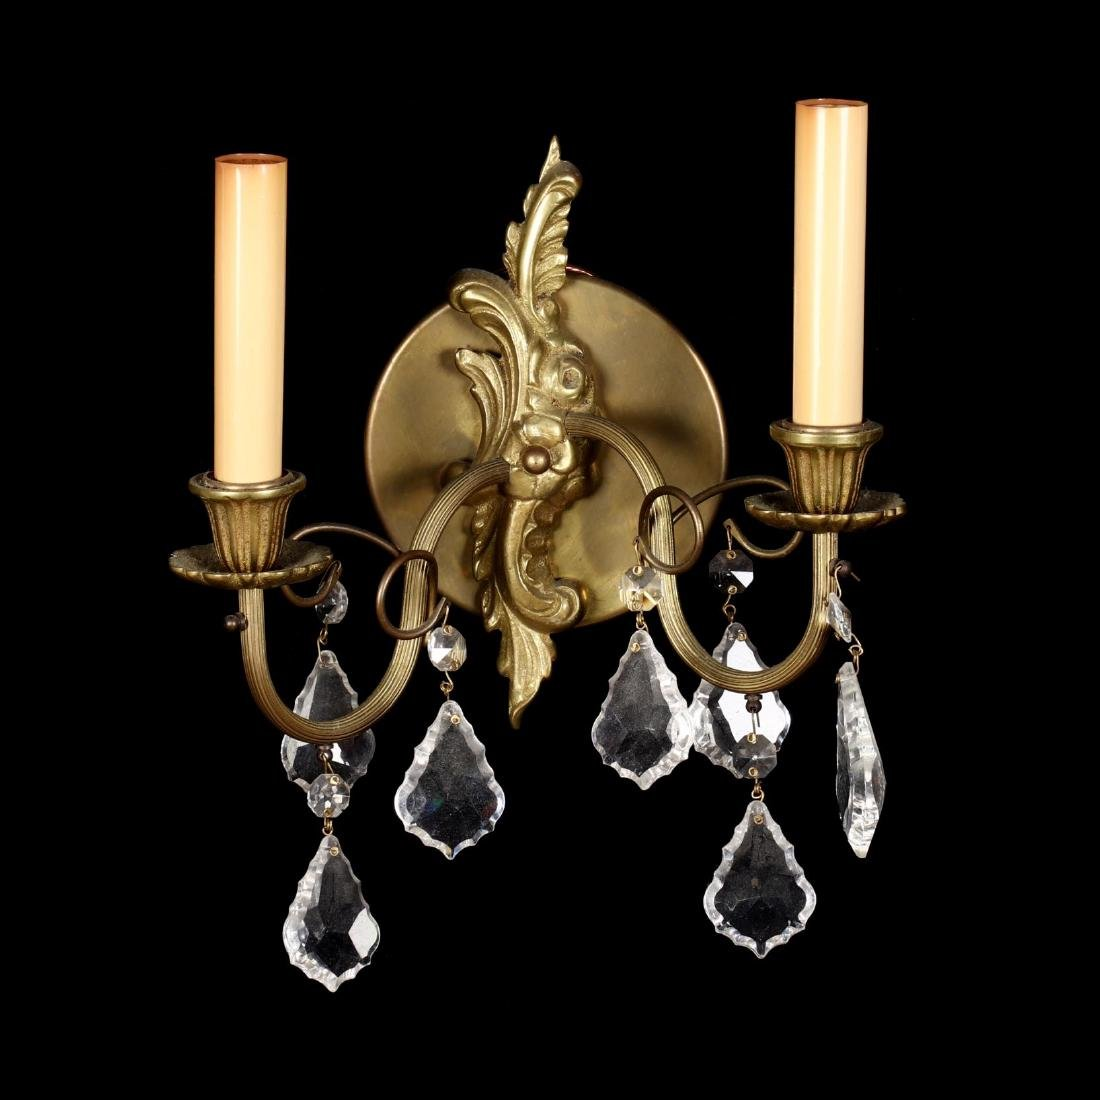 Pair of French Rococo Style Drop Prism Wall Sconces - 2